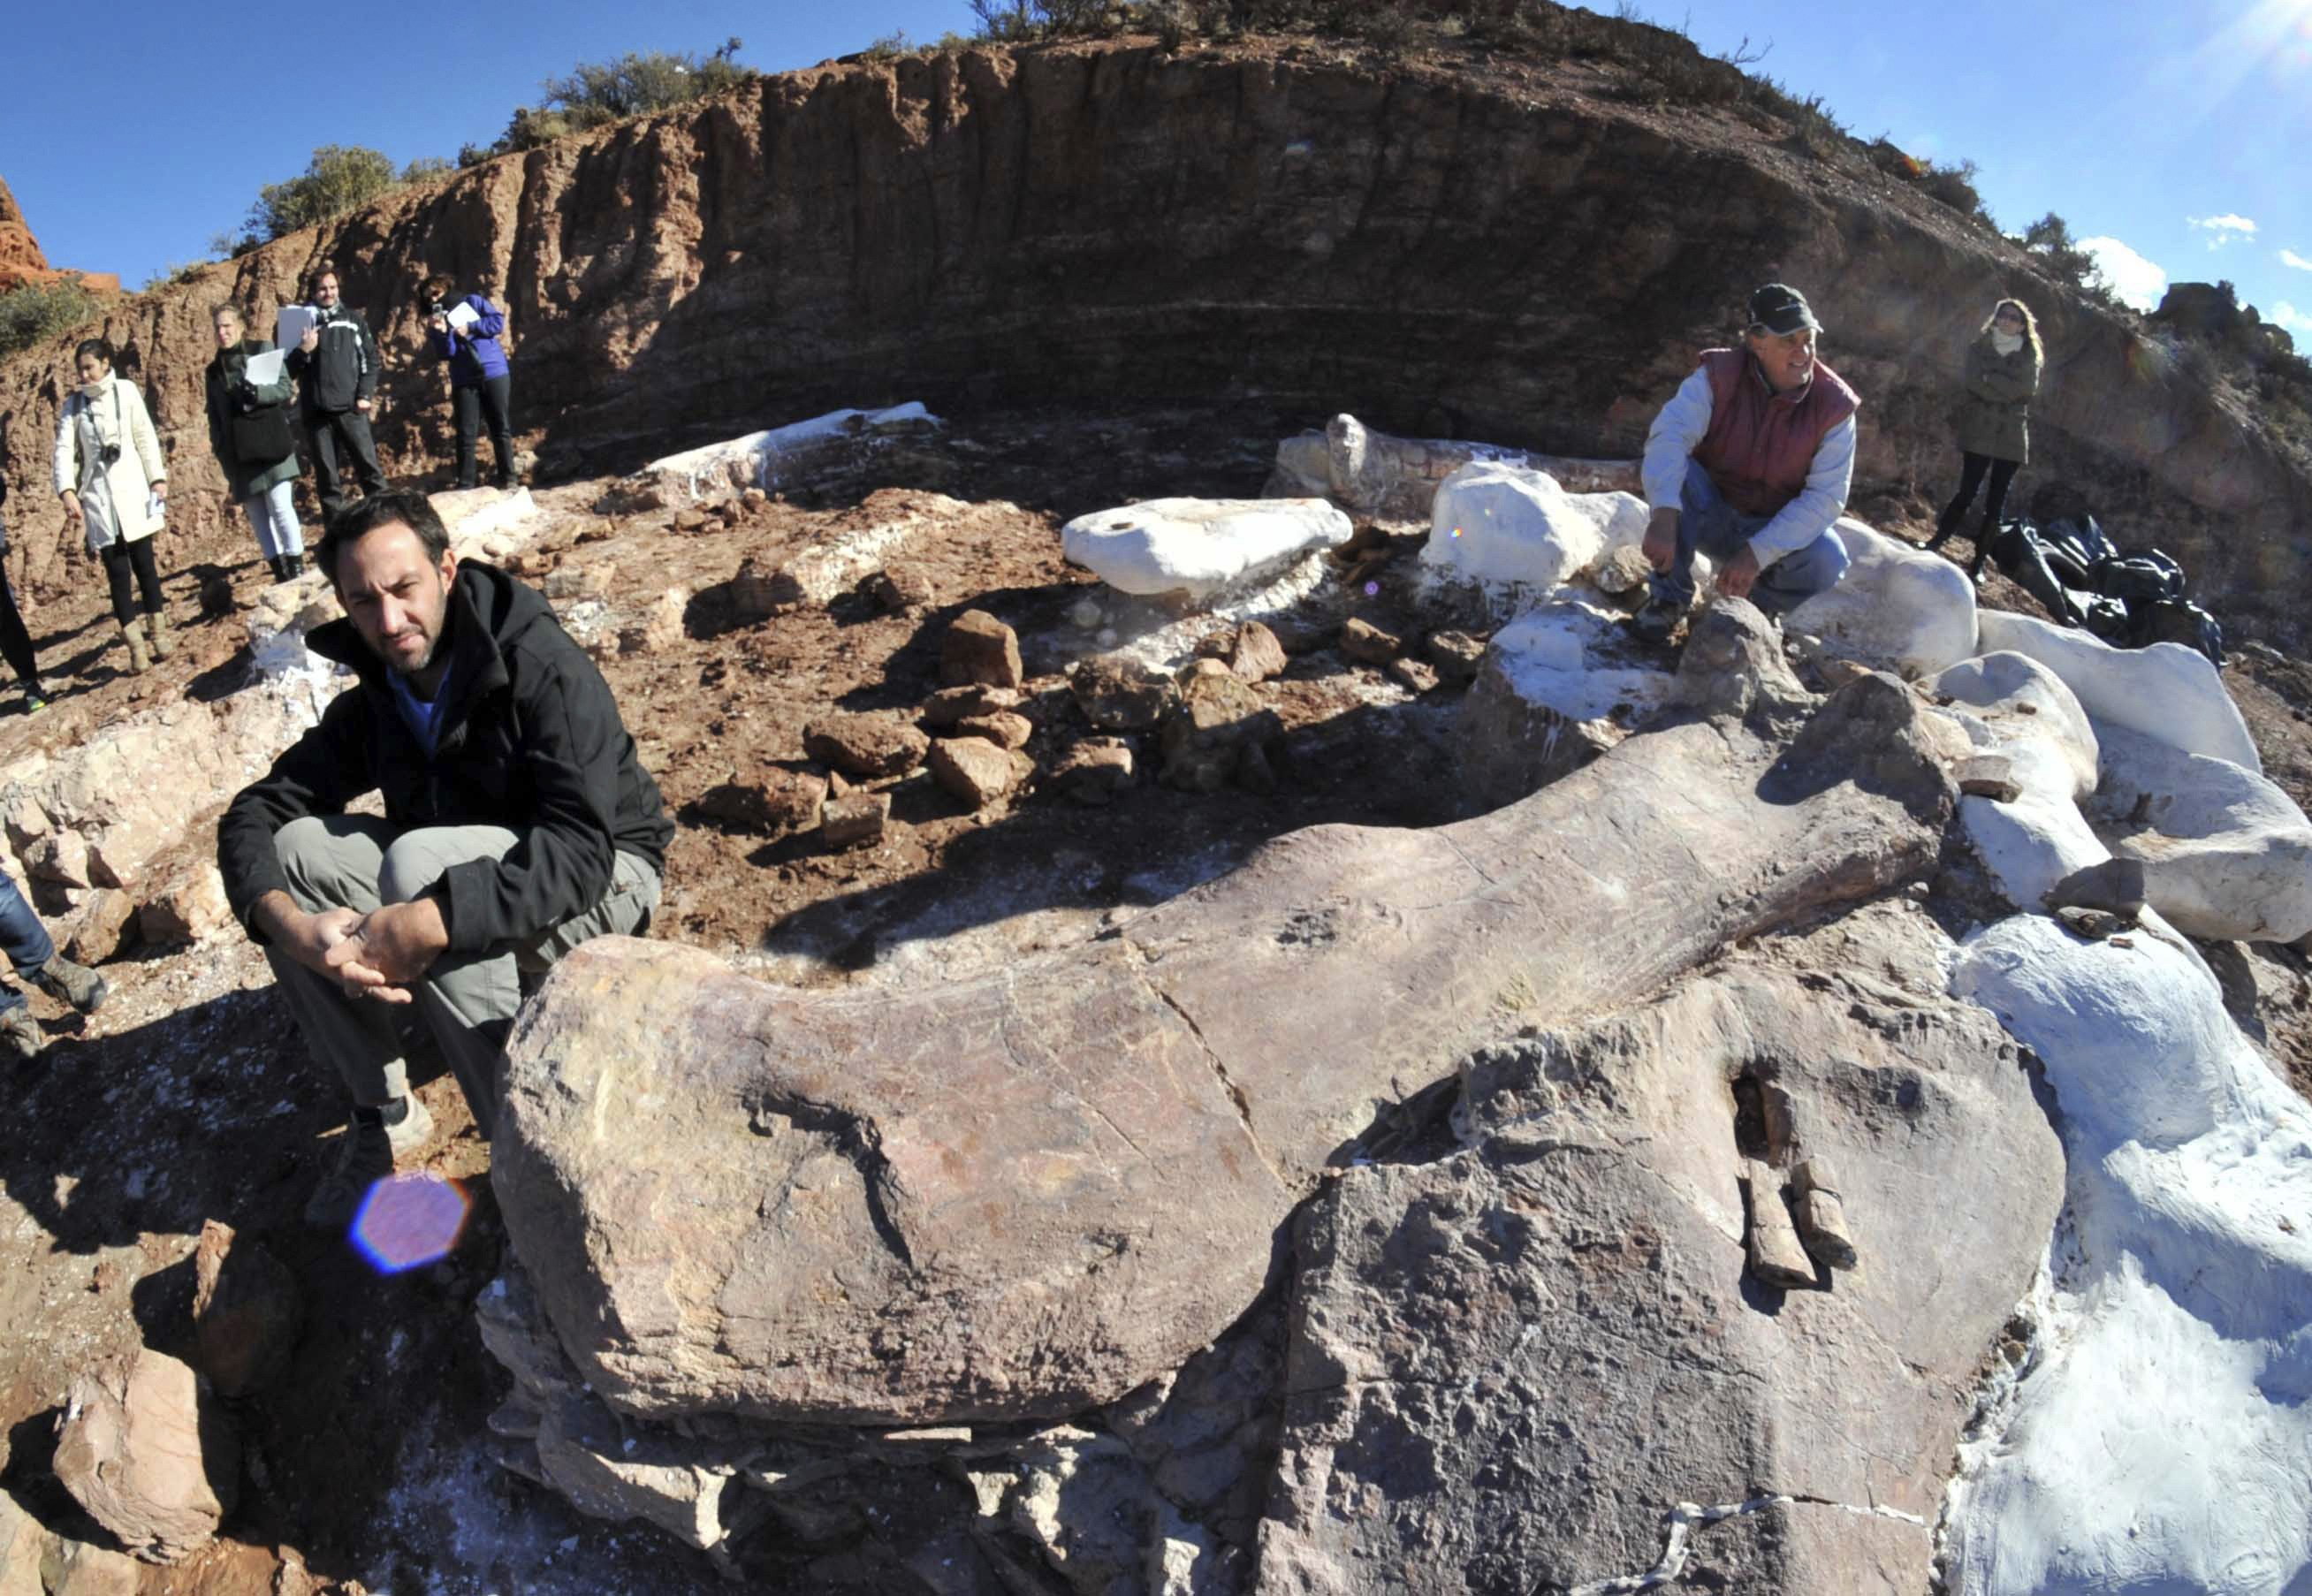 Paleontologists Jose Luis Carballido (L) and Ruben Cuneo pose next to the bones of a dinosaur at a farm in La Flecha, west of the Argentina's Patagonian city of Trelew, May 16, 2014. Paleontologists have unearthed in Argentina what they say is the largest set of remains of a dinosaur ever found to date. According to Carballido and Cuneo, the fossils are that of a sauropod and preliminary tests dates the fossils at some 90 million years old. Picture taken May 16, 2014. REUTERS/Daniel Feldman (ARGENTINA - Tags: ANIMALS SCIENCE TECHNOLOGY)